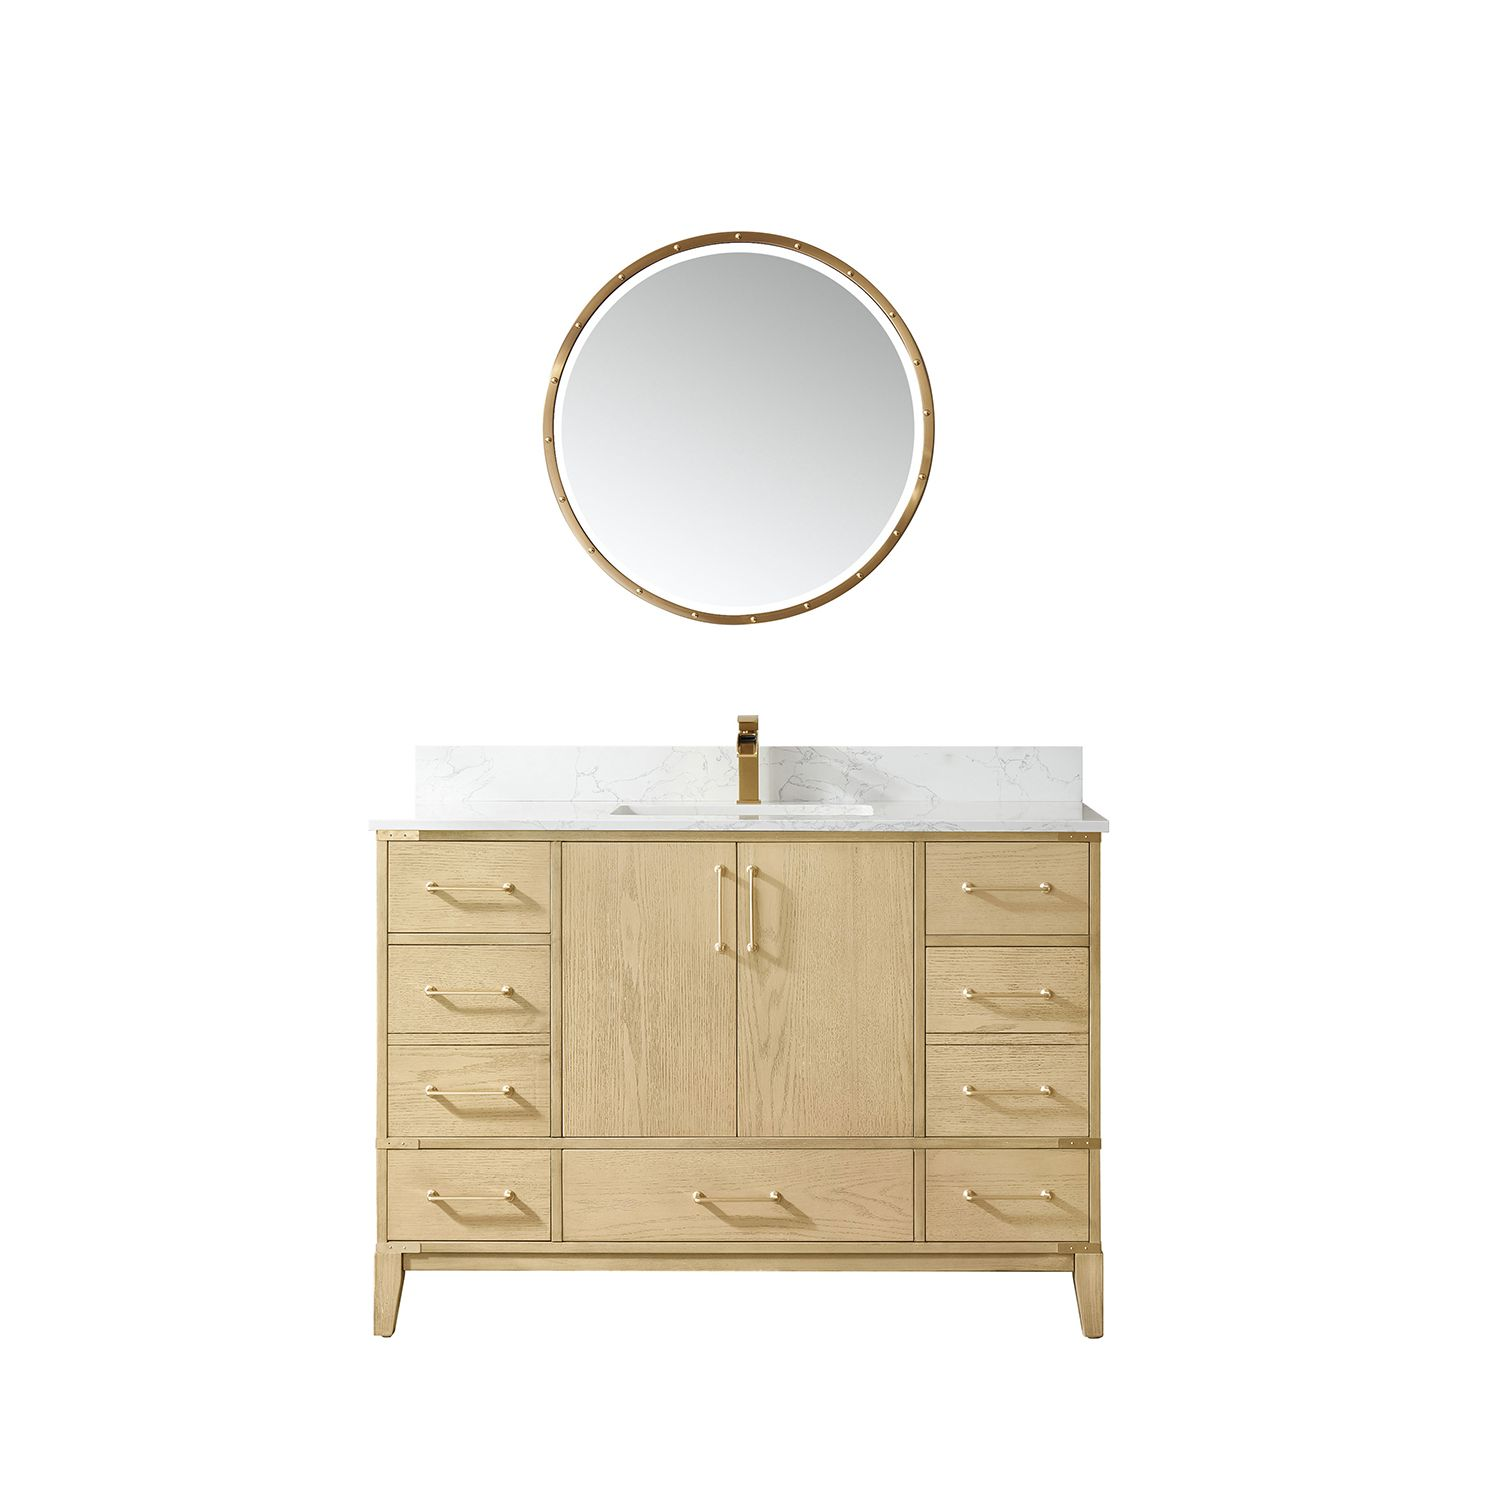 """48"""" Vanity in Washed Ash with White Composite Grain Stone Countertop Without Mirror"""